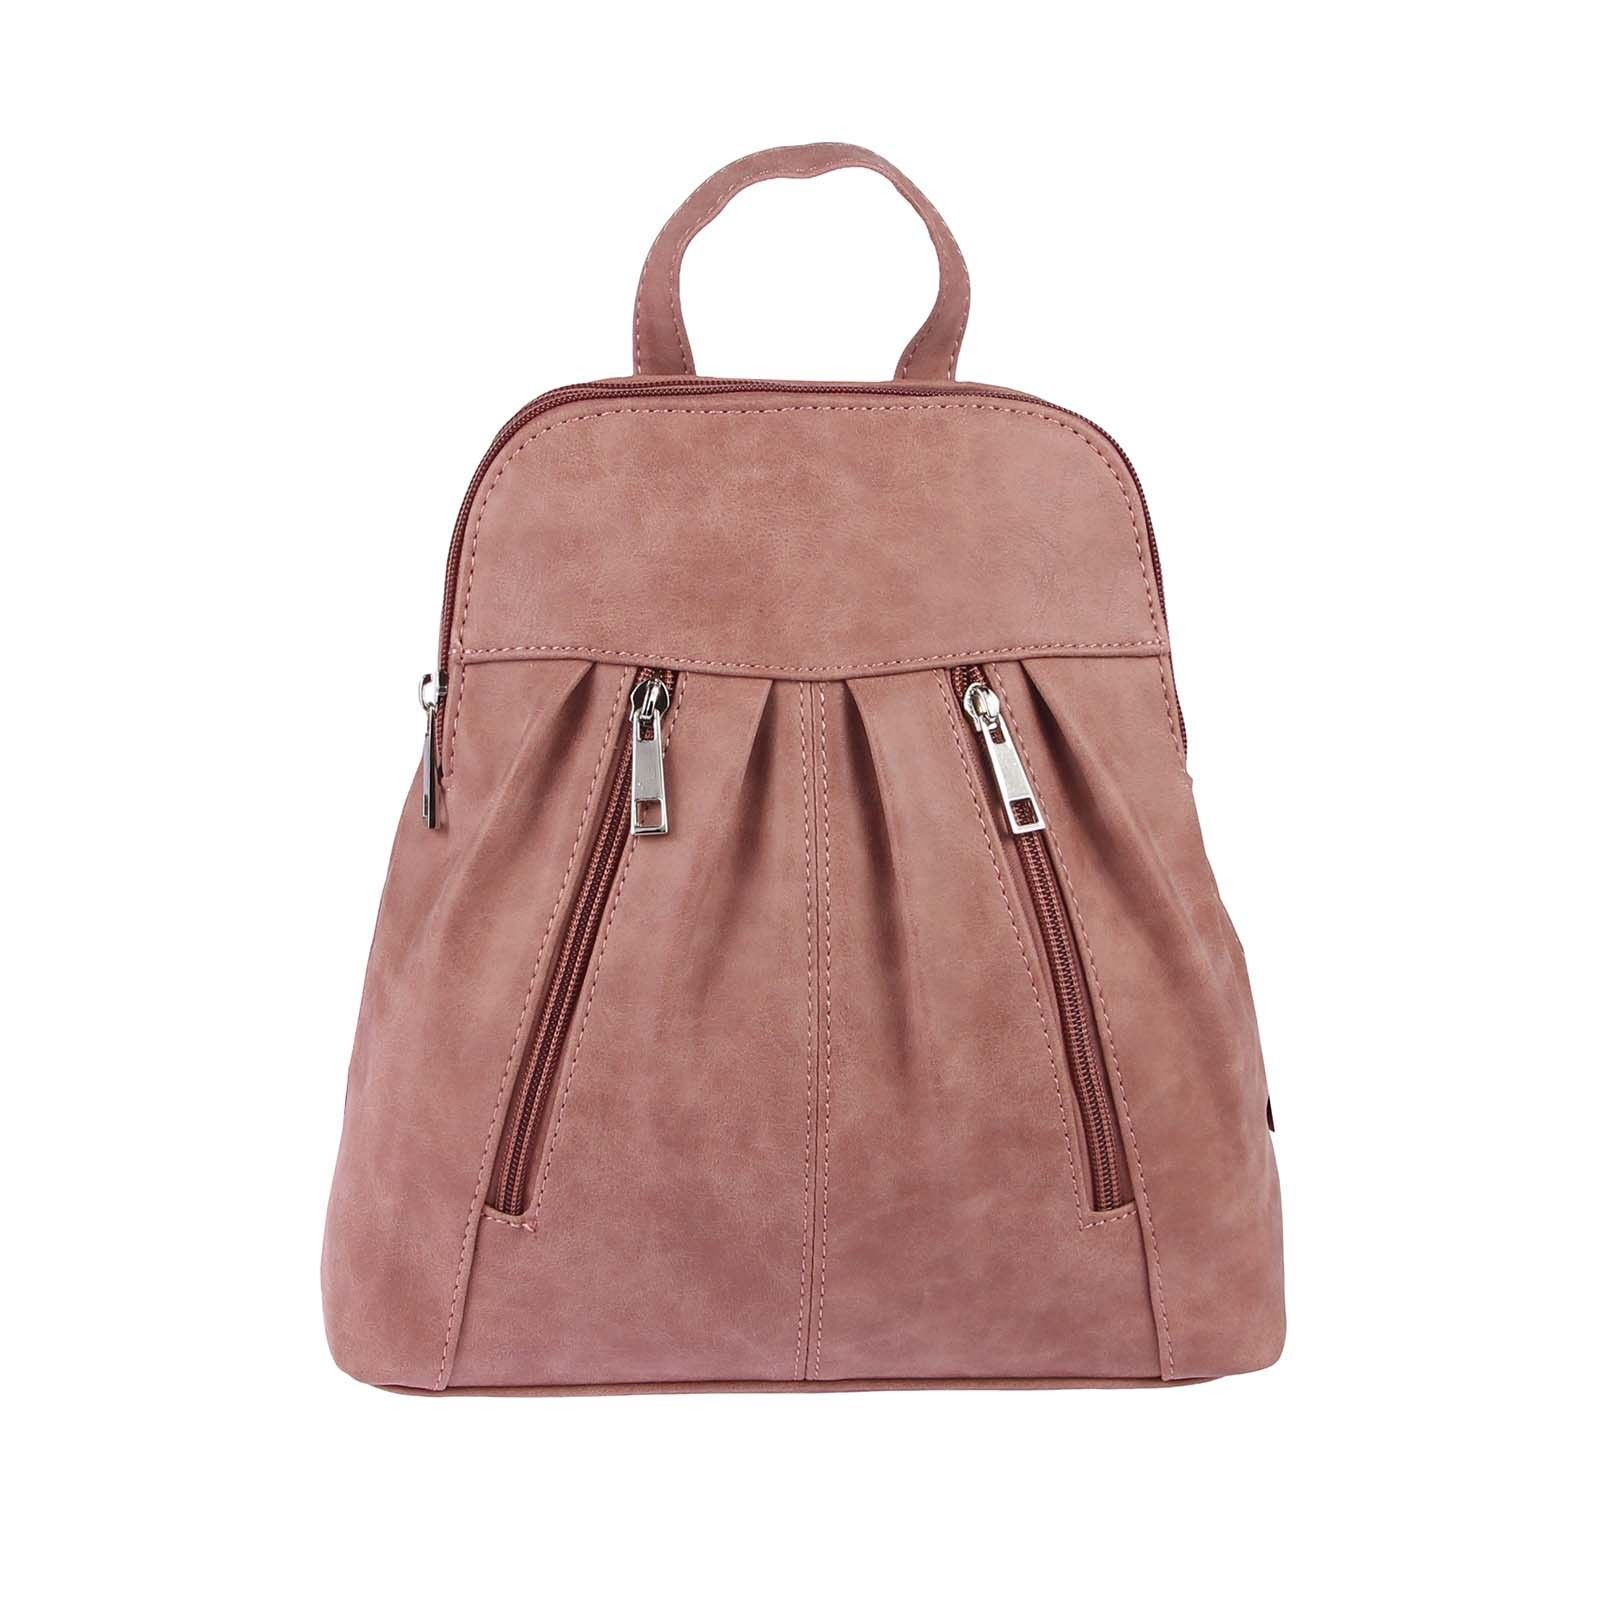 Marked Your Friends So They Can See It Ladies Backpack Daypack Bag City Backpack Shoulder Bag Backpack Blogger Bag 26 65 End Date Schultertasche Taschen